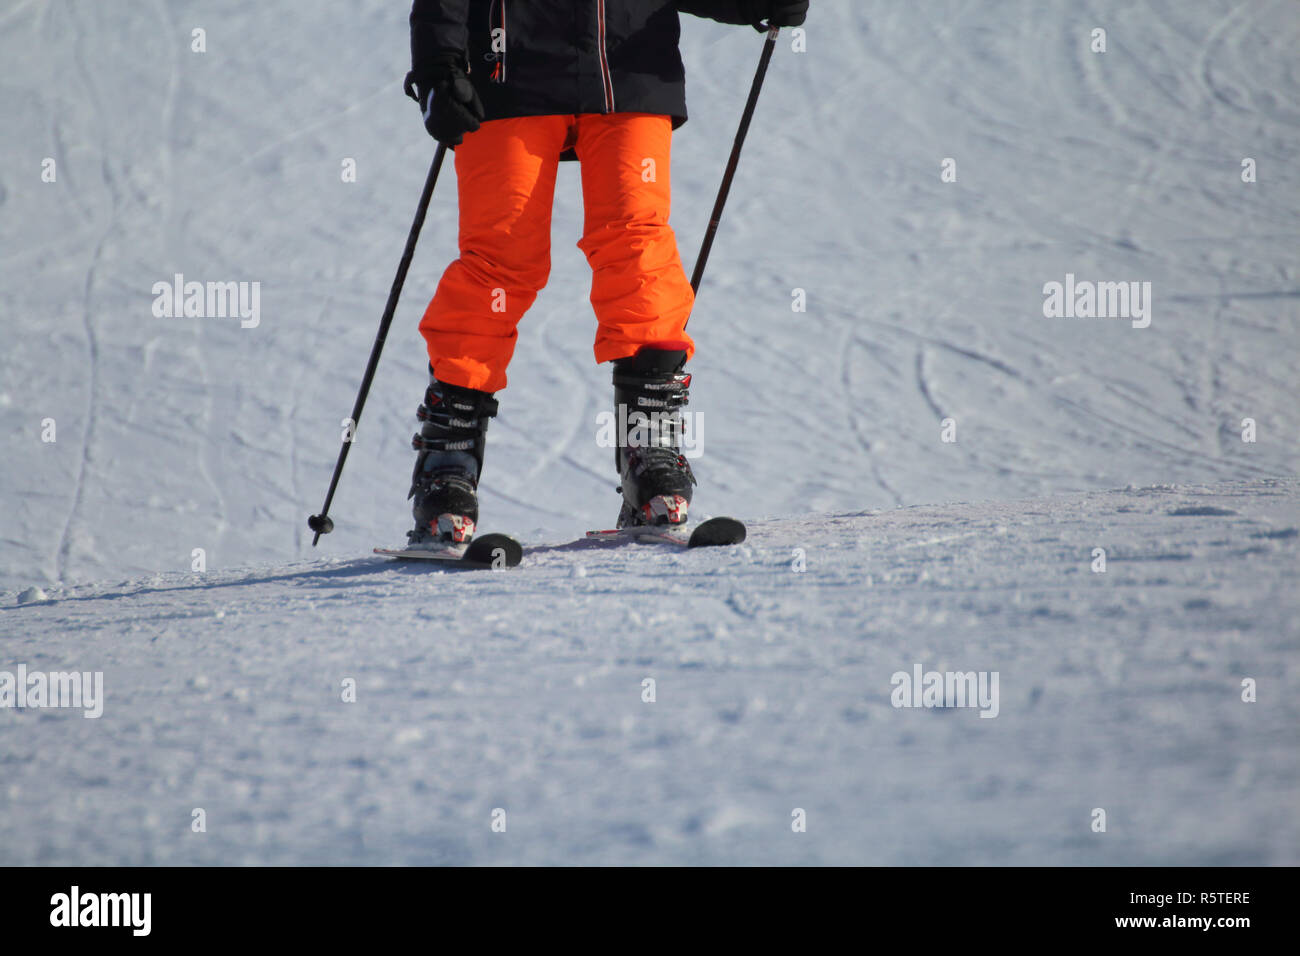 a ski athlete arrives at the end of the descent - Stock Image